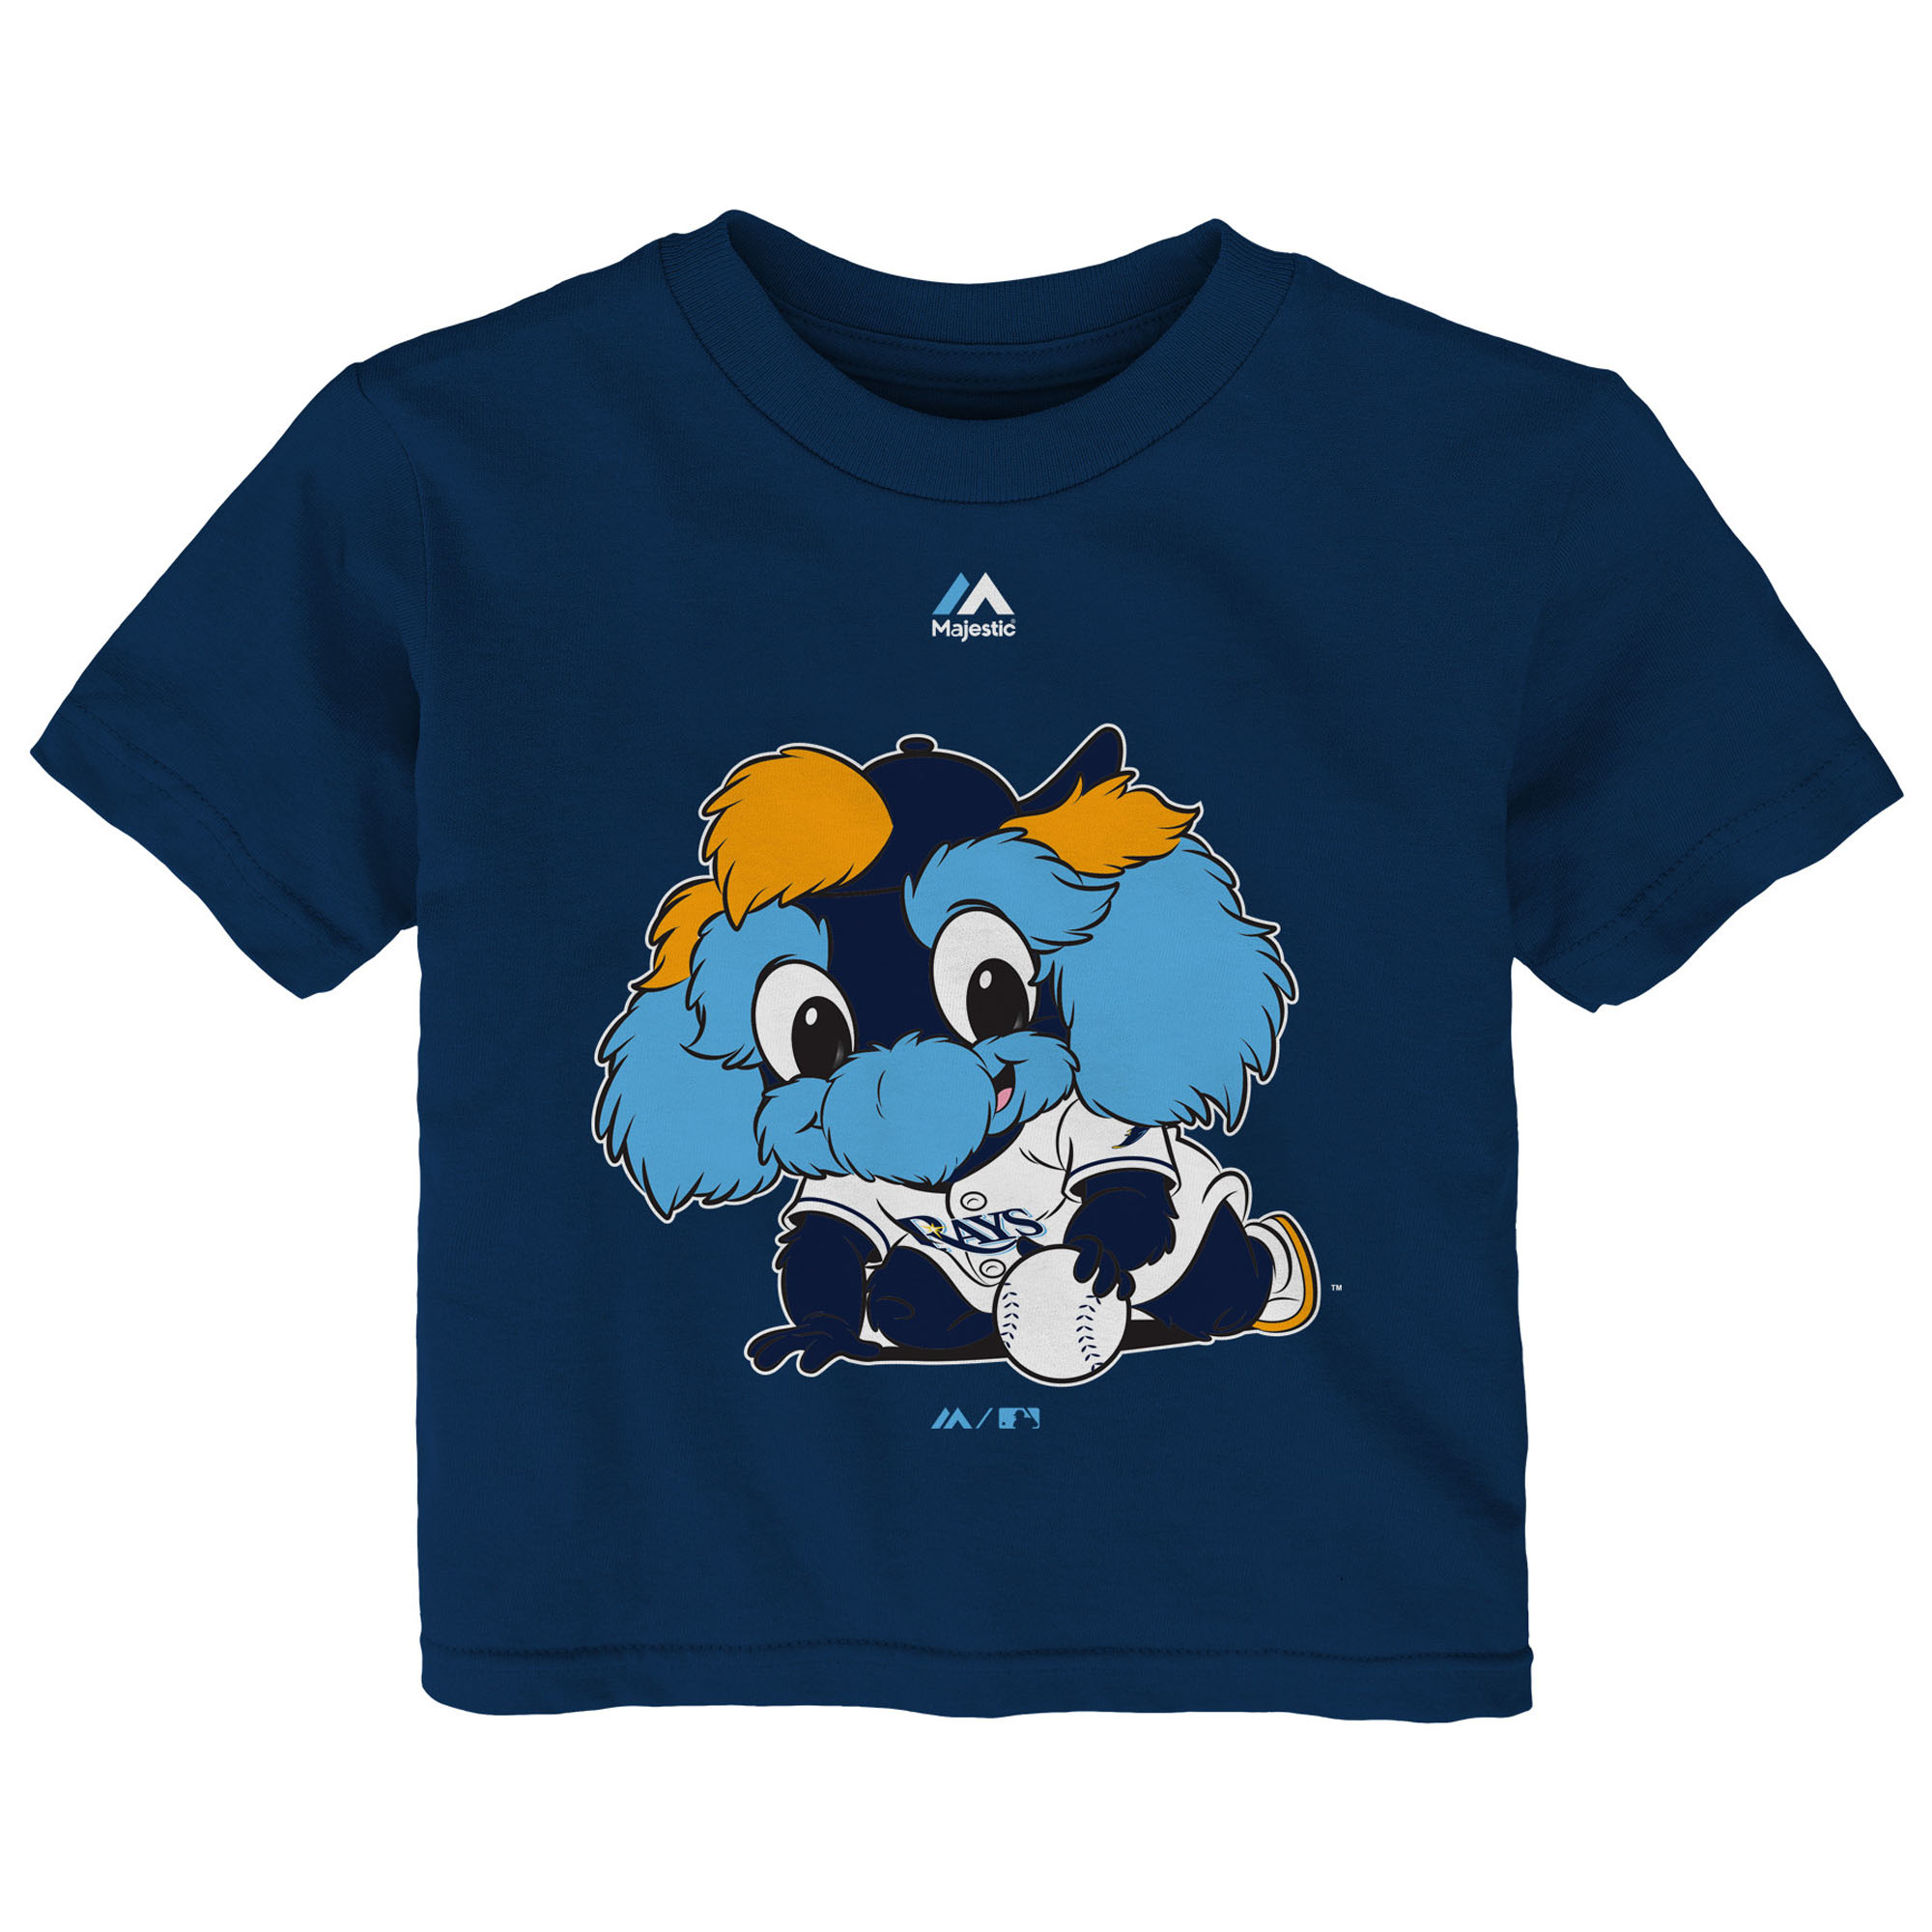 Tampa Bay Rays Majestic Infant Baby Mascot T-Shirt - Navy